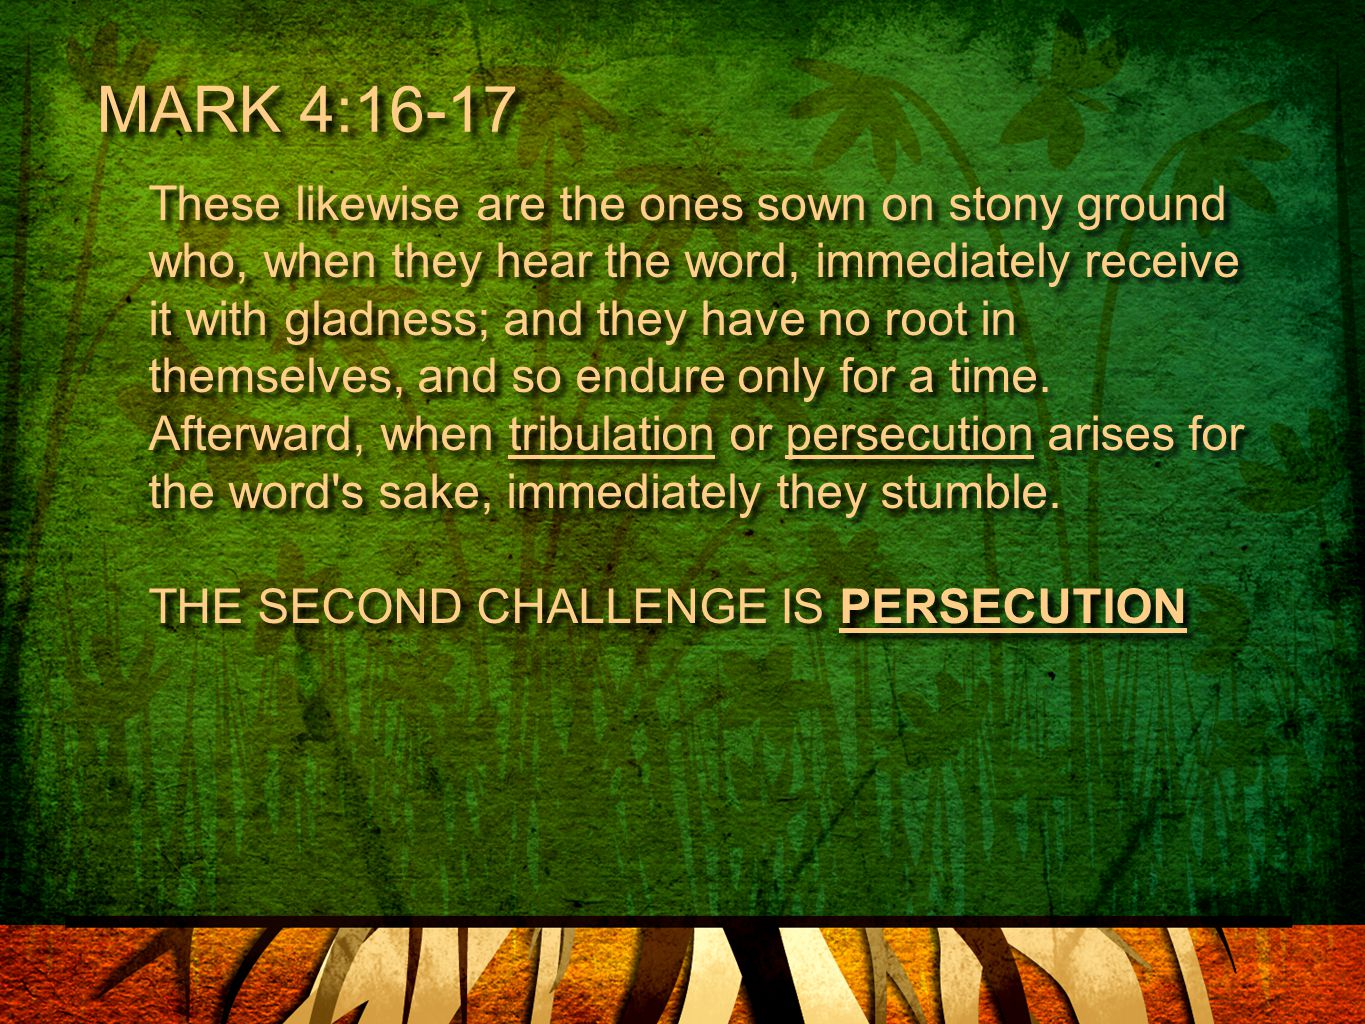 MARK 4:16-17 These likewise are the ones sown on stony ground who, when they hear the word, immediately receive it with gladness; and they have no root in themselves, and so endure only for a time.